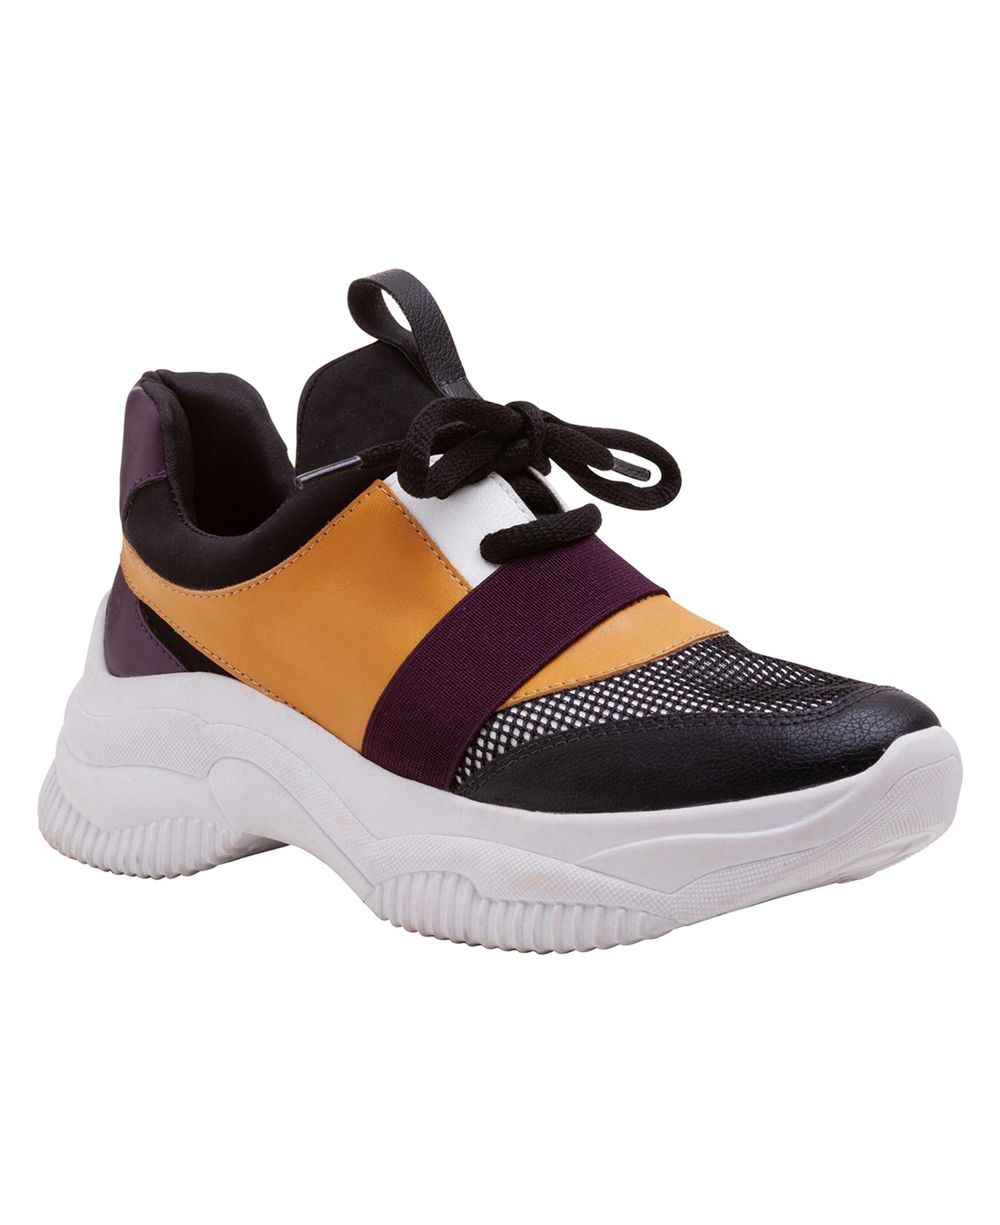 70460074_187_1-TENIS-CHUNKY-COLOR